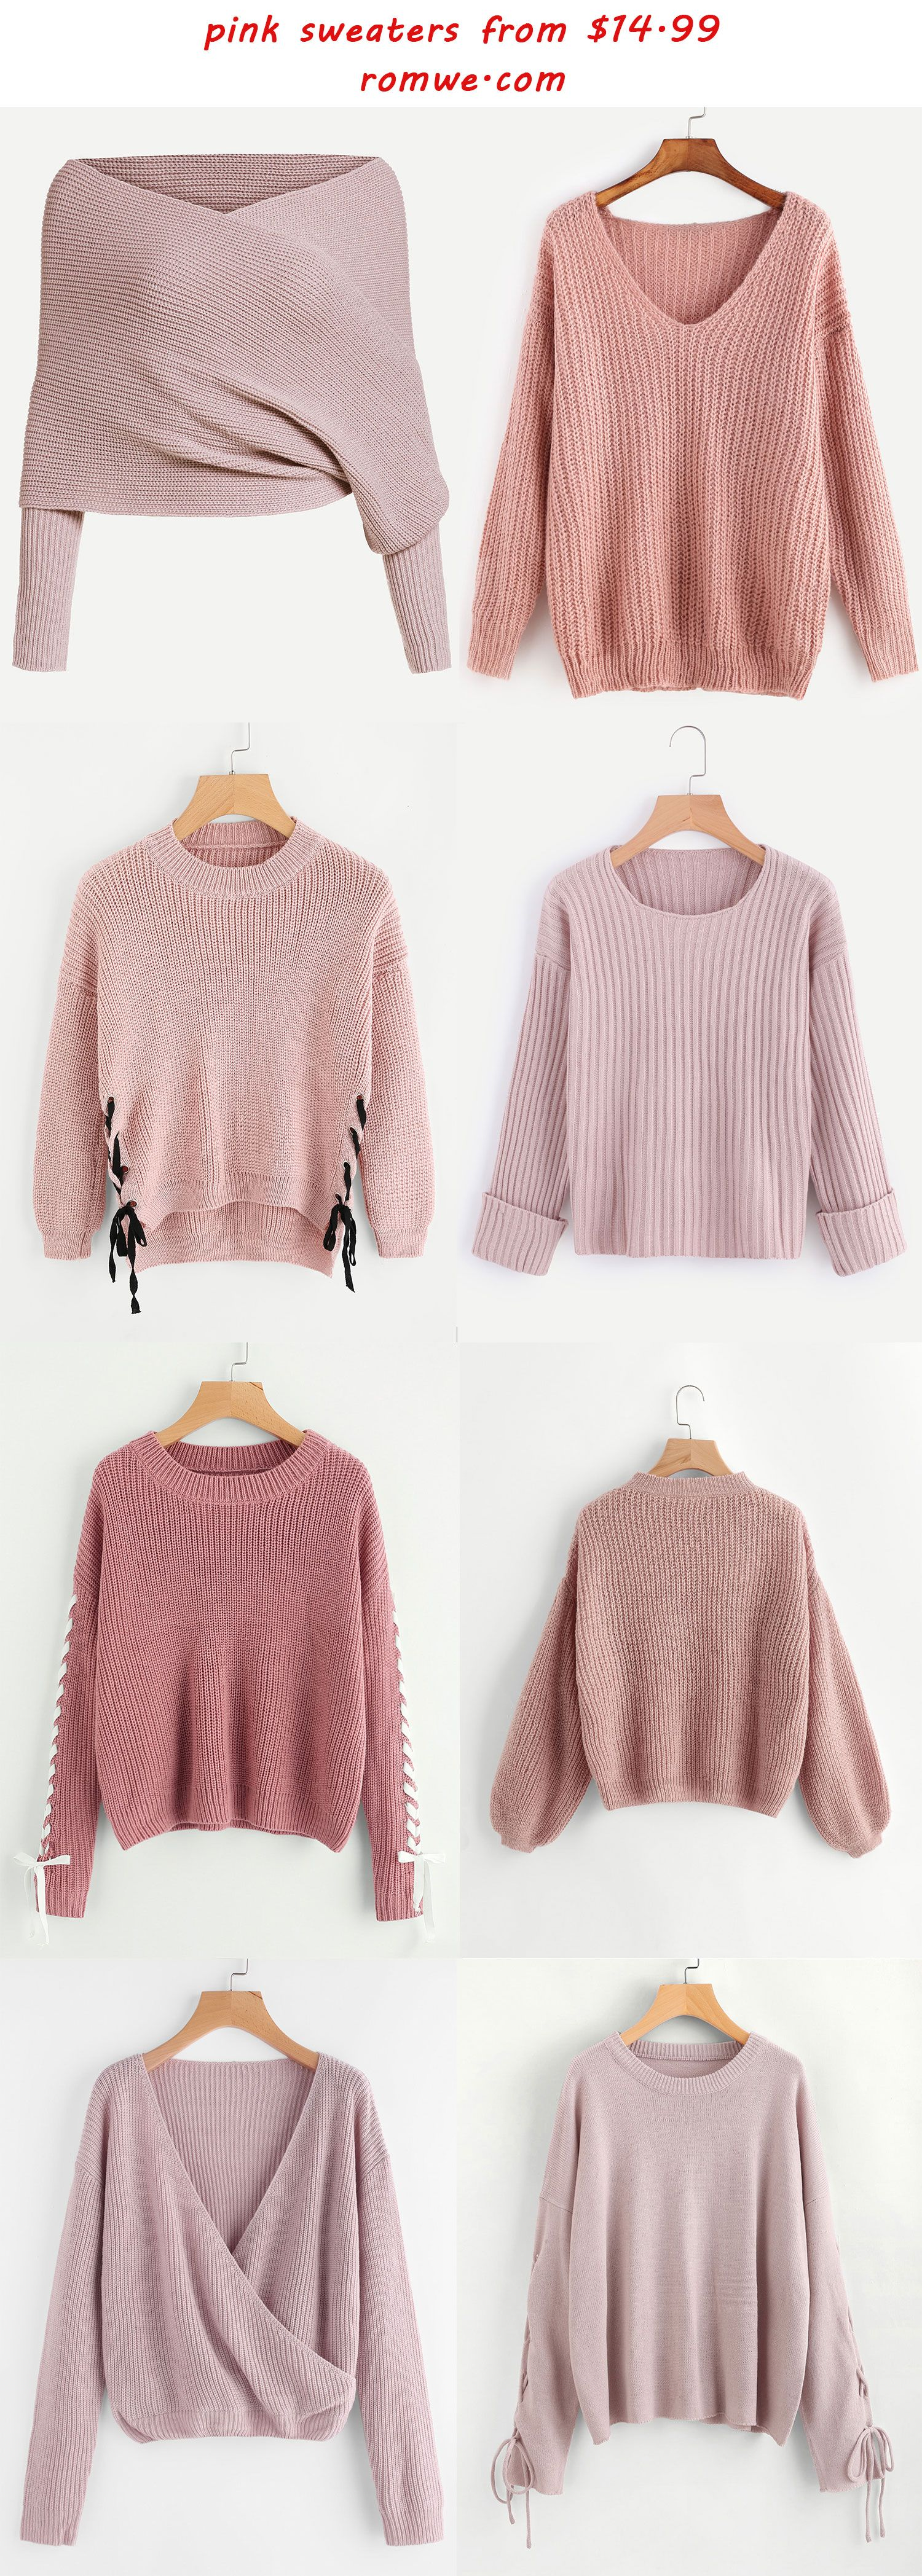 pink sweaters 2017 - romwe.com | Outfits | Pinterest | Clothes ...